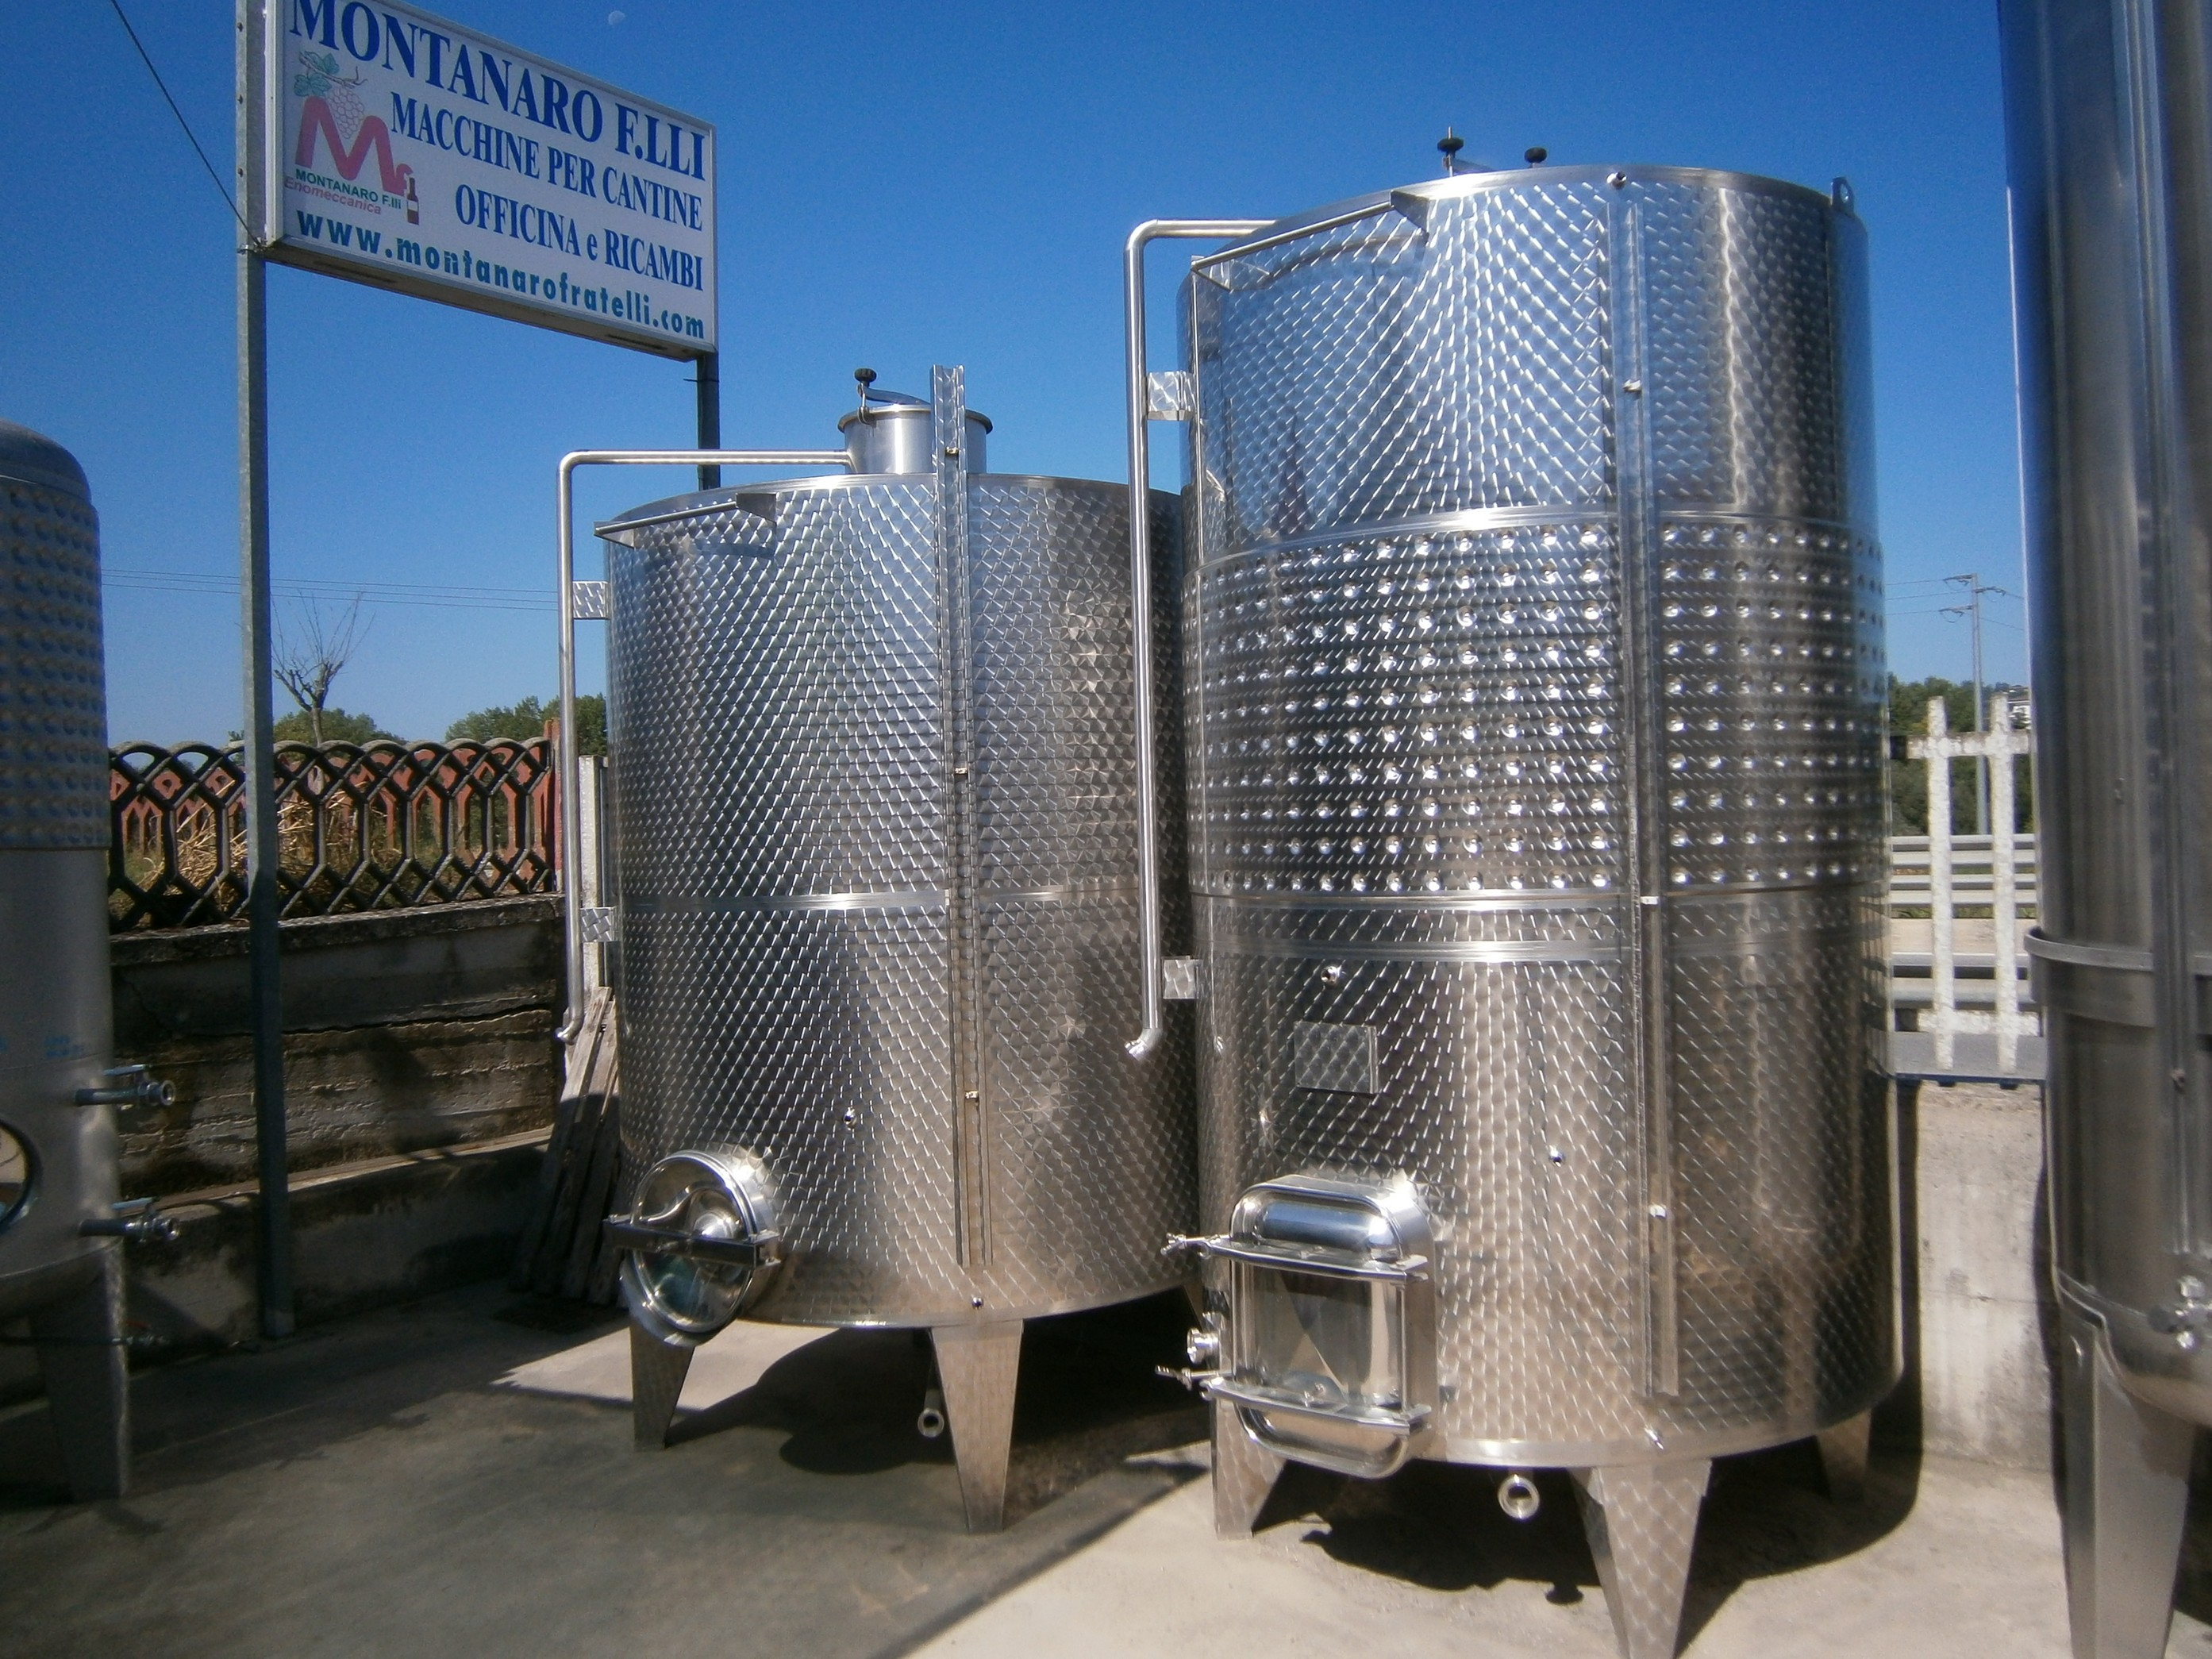 STAINLESS STEEL TANKS CAPACITY LITERS 5000 STORAGE /FERMENTATION MODEL INCLINED FLAT BOTTOM NEW EQUIPMENT